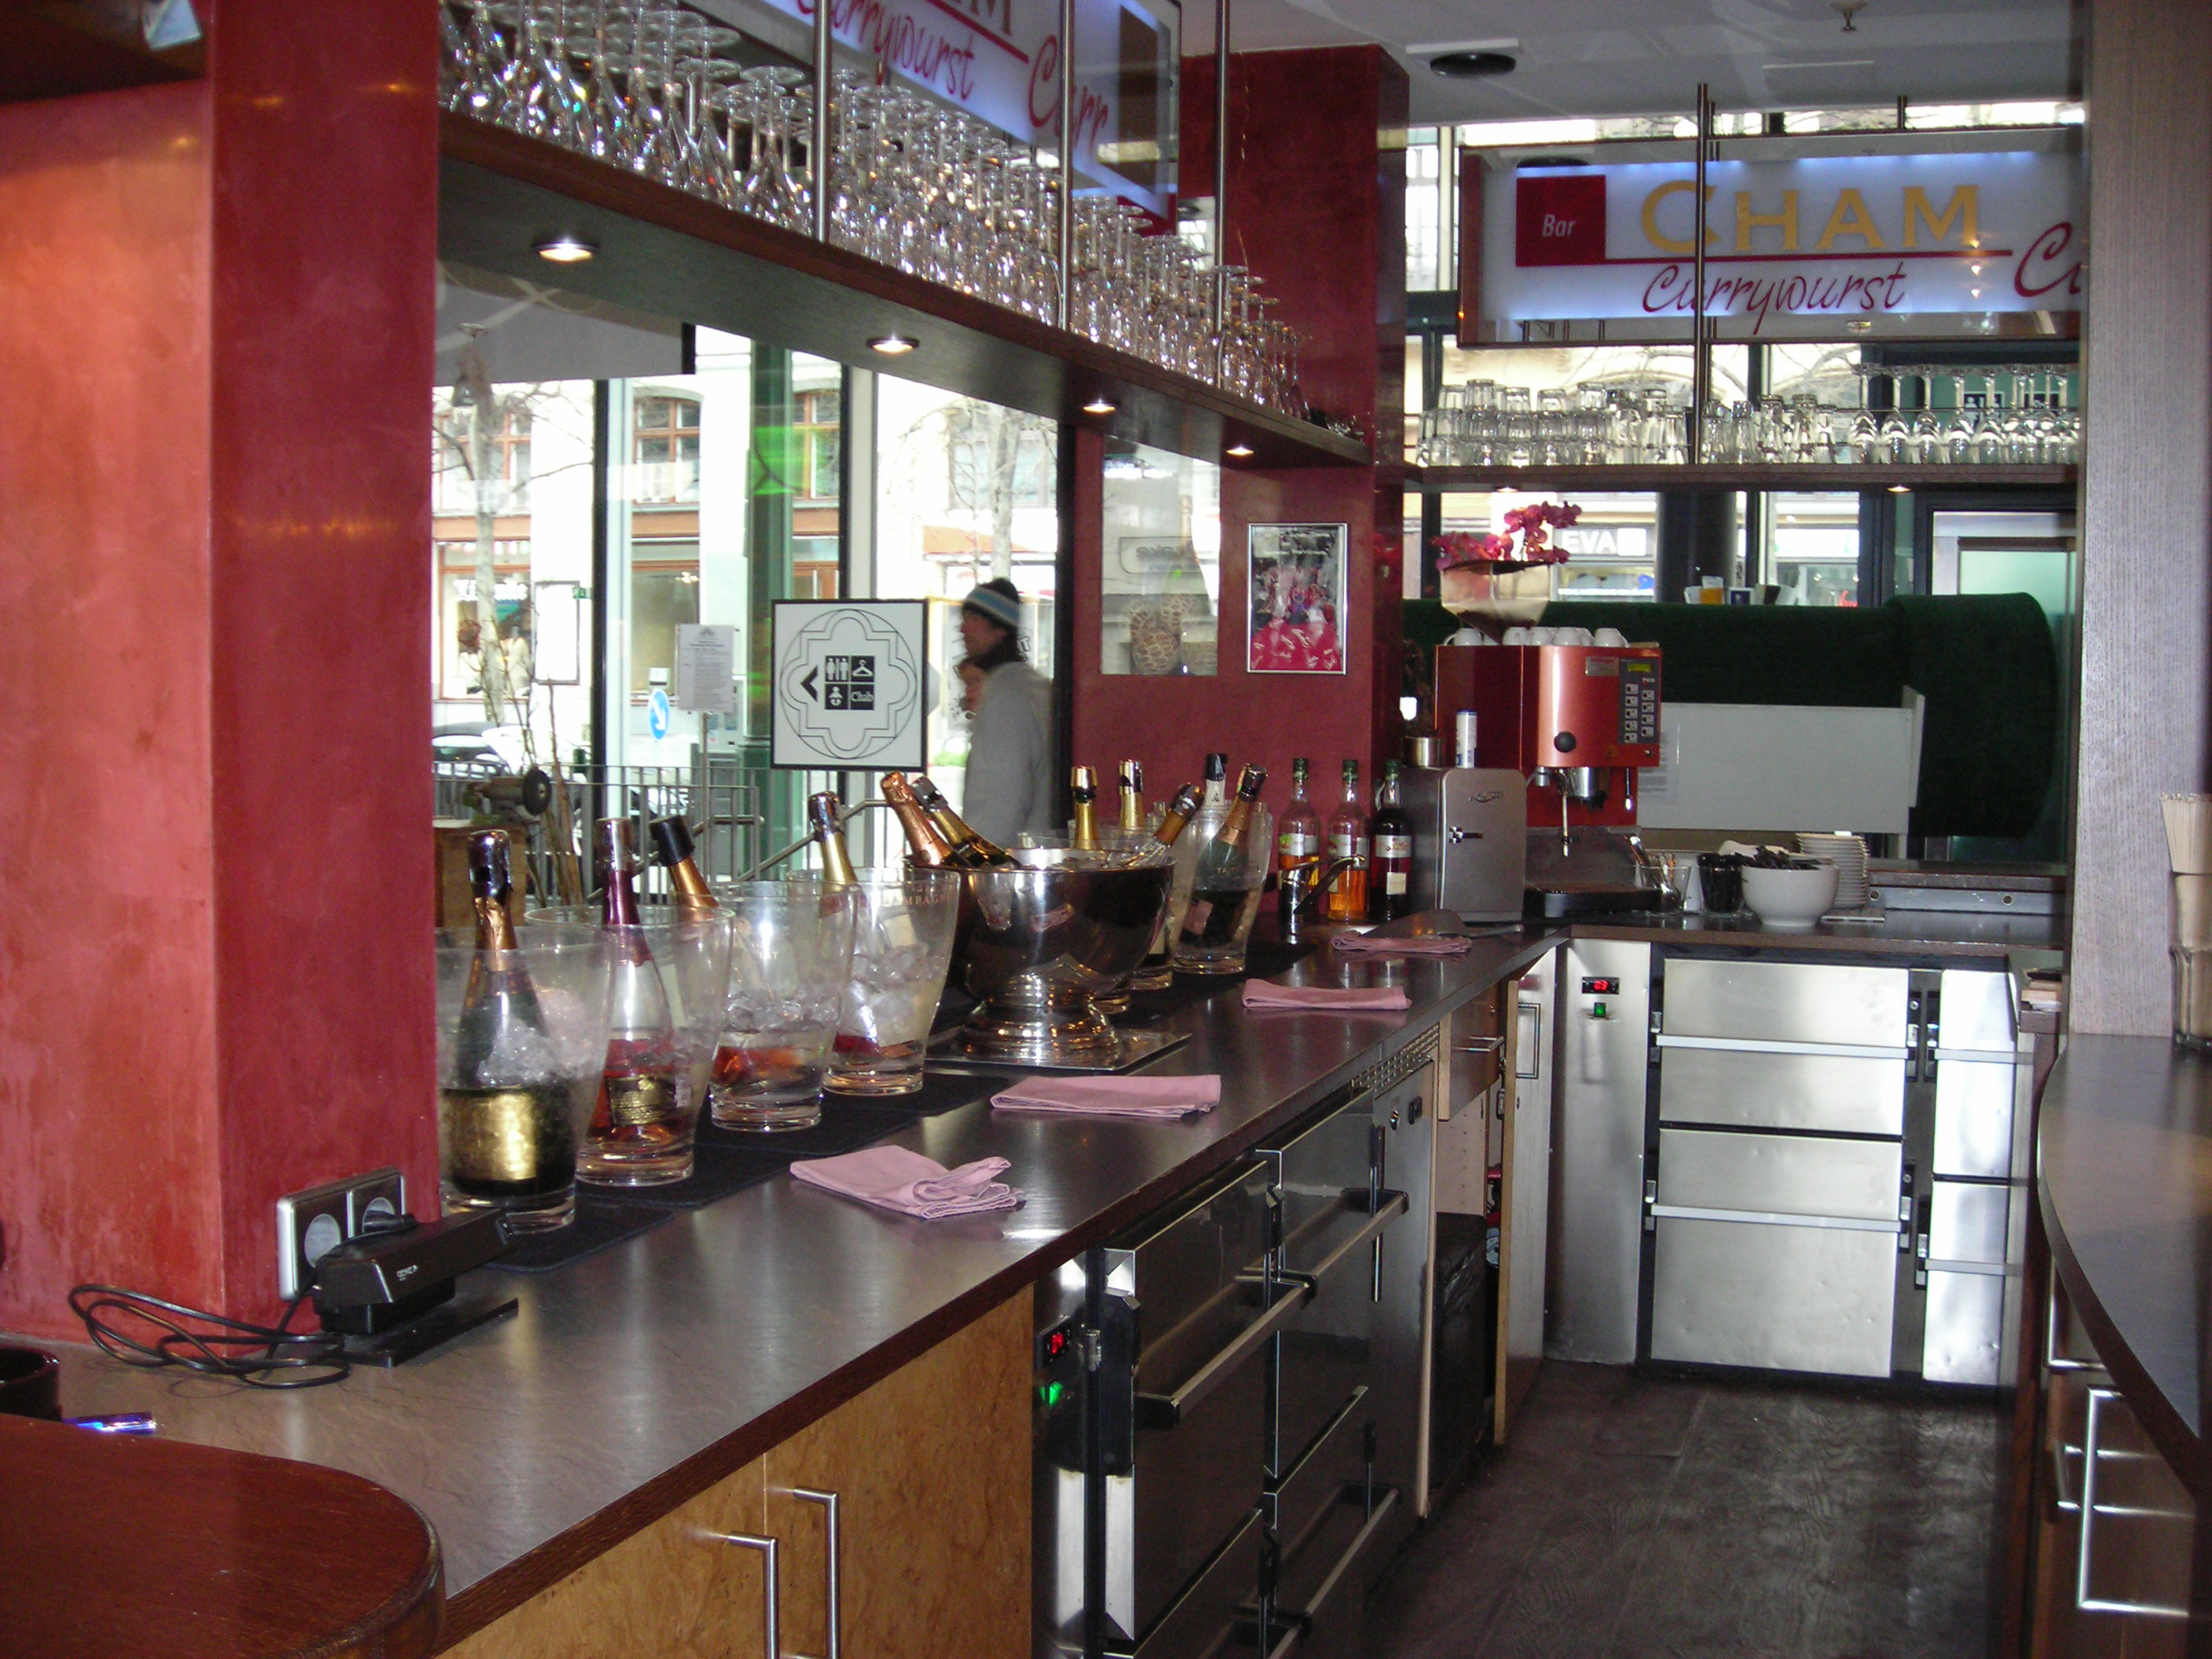 File:Bar counter-Schrannenhalle.JPG - Wikimedia Commons